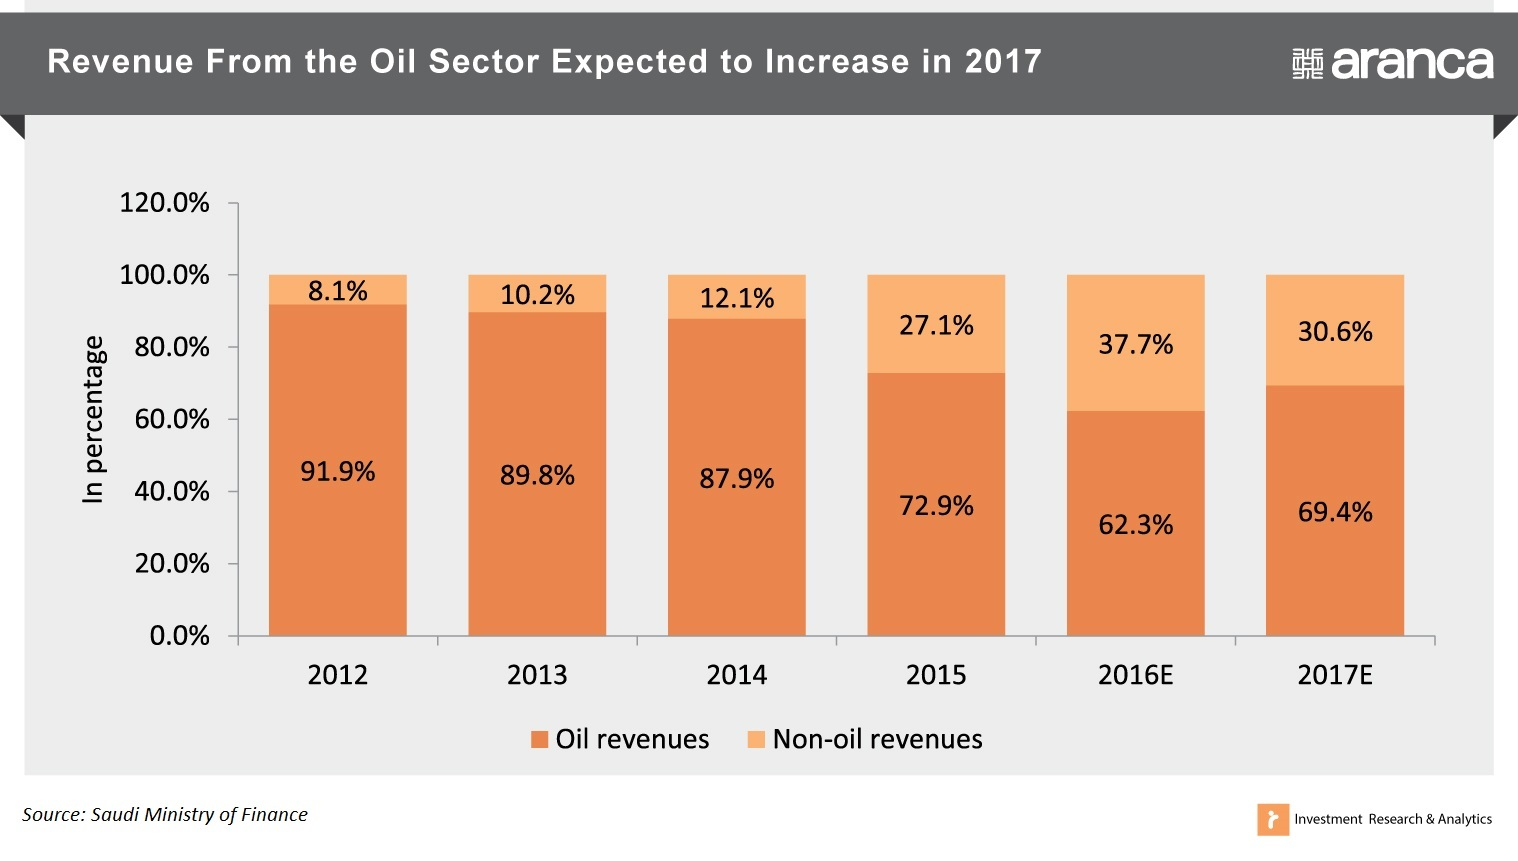 Saudi Arabia Oil Revenue vs. Non Oil Revenue 2012-17